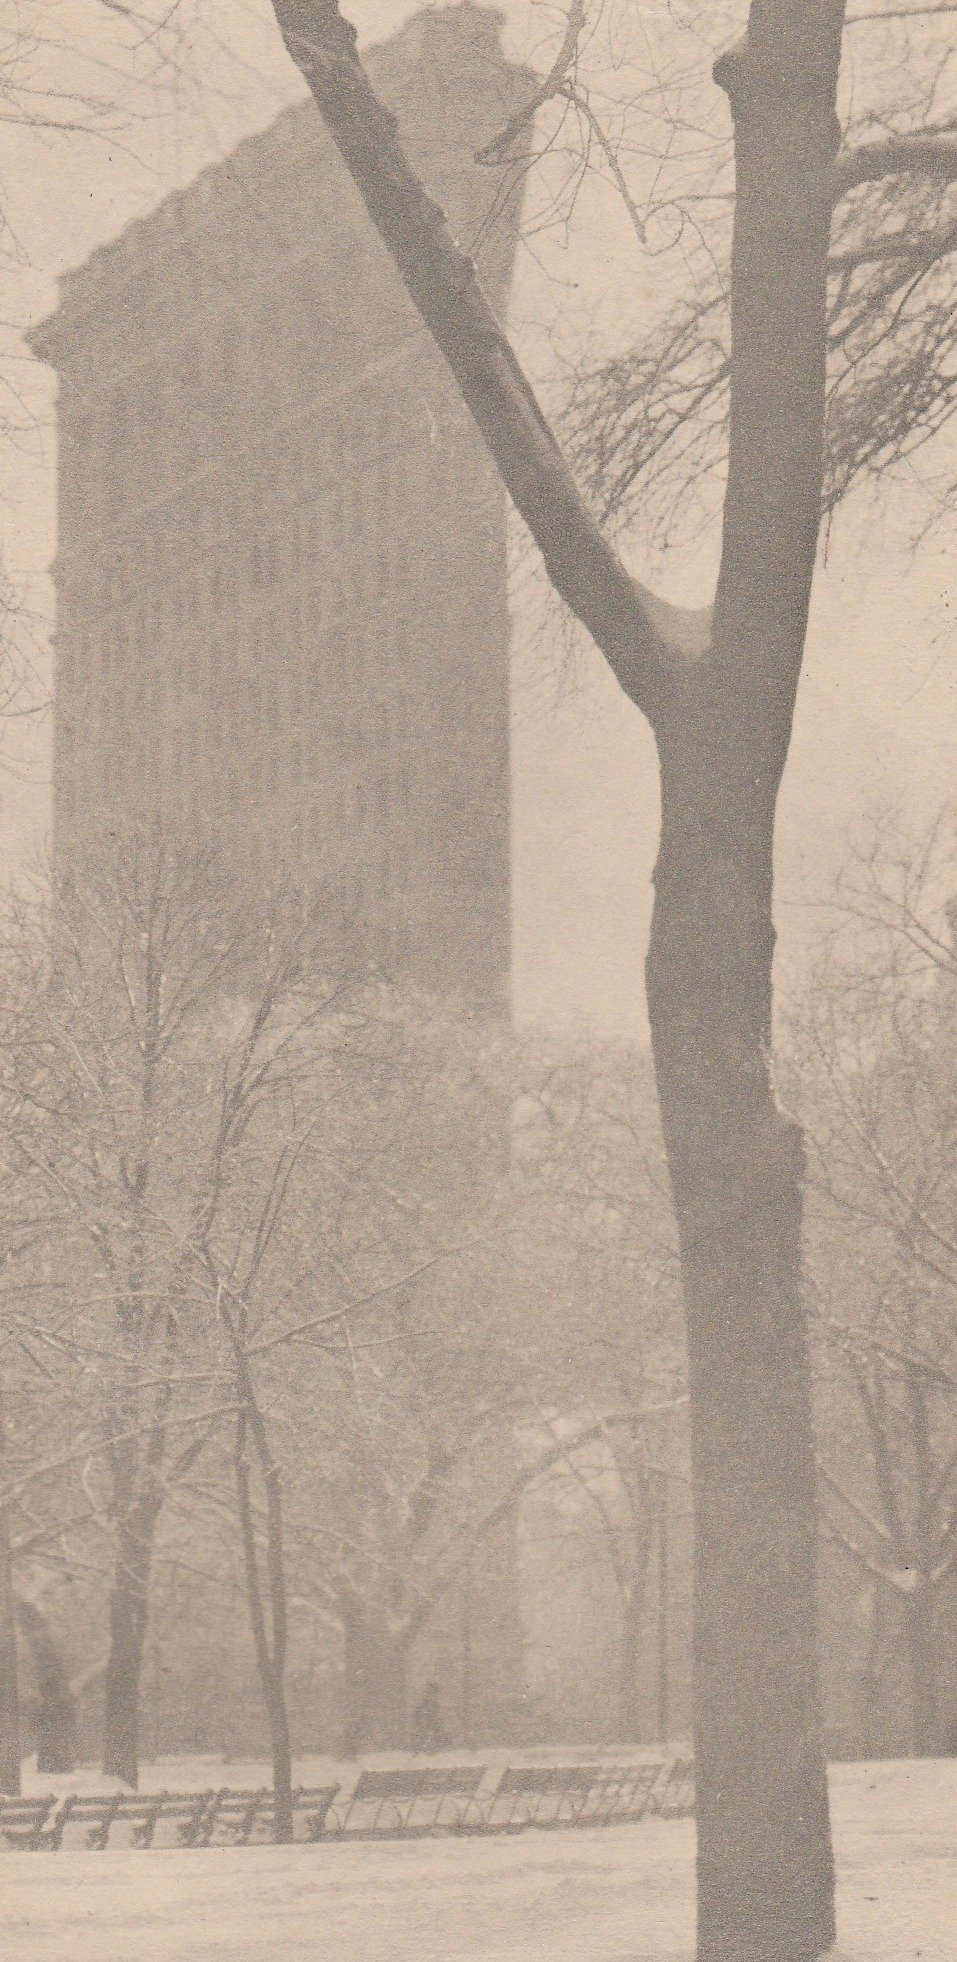 Alfred Stieglitz - The Flat Iron